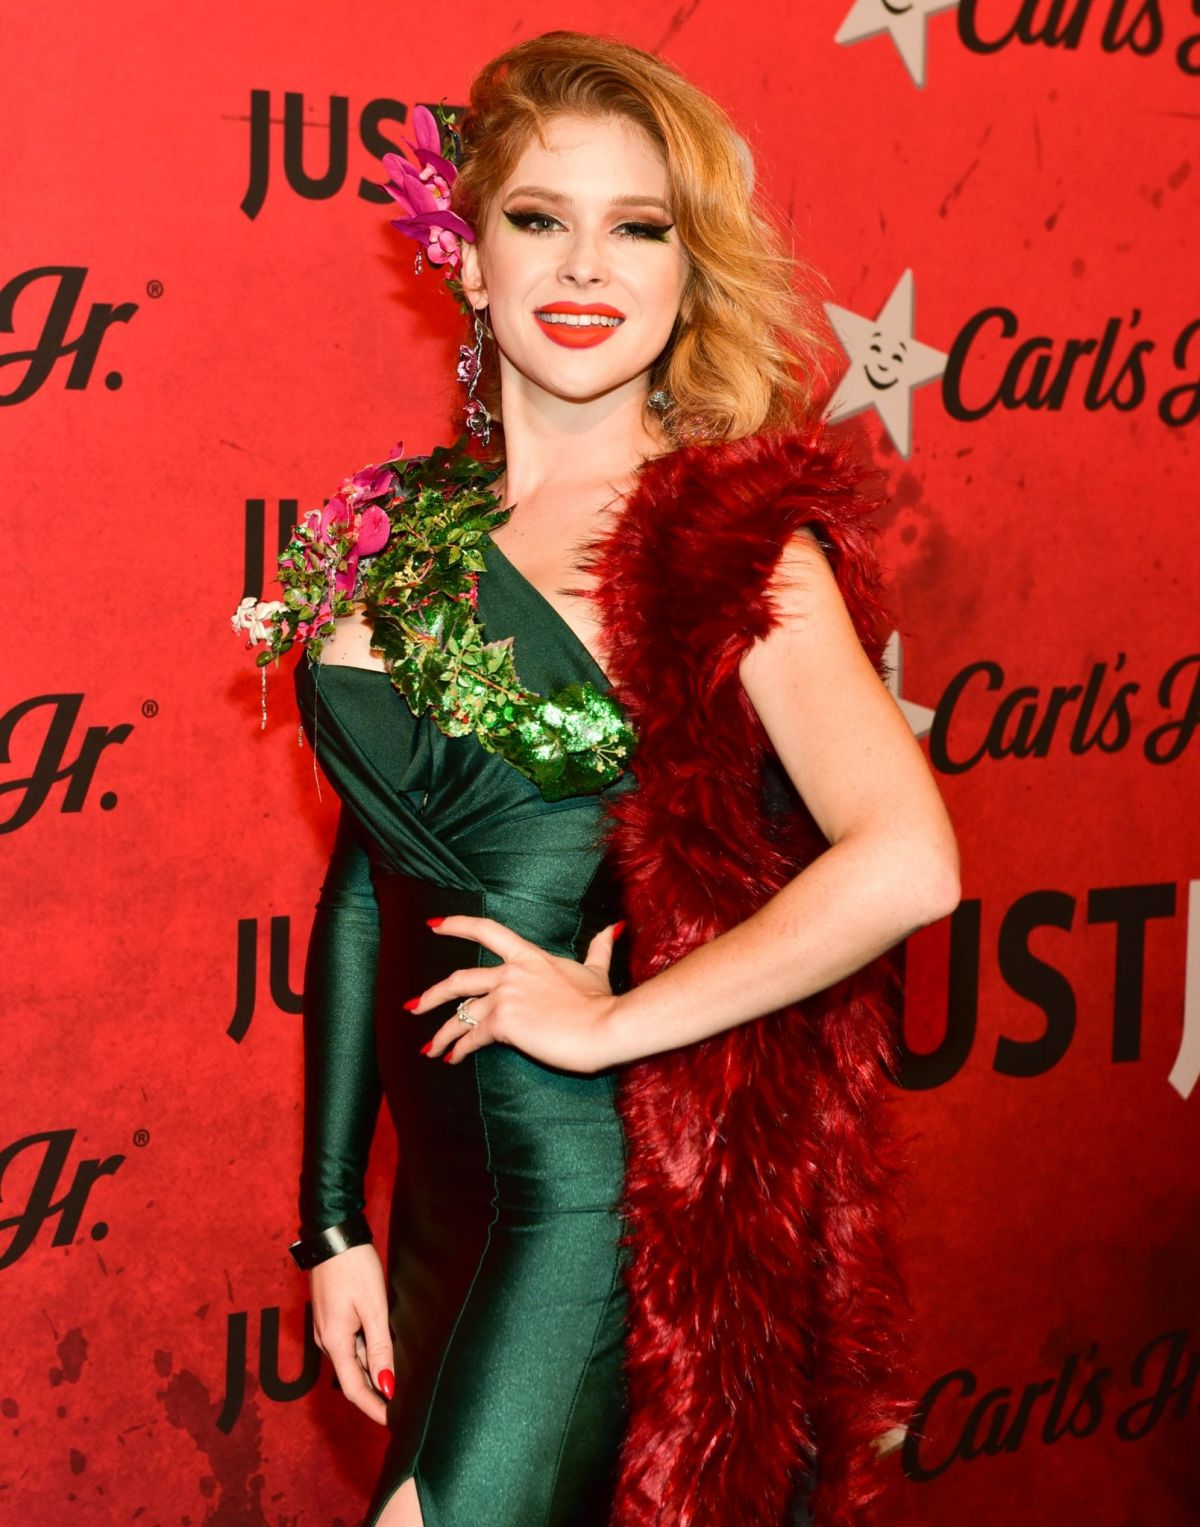 727ca10b0610 Renee olstead at just jared halloween party in west hollywood jpg 1200x1527 Renee  party